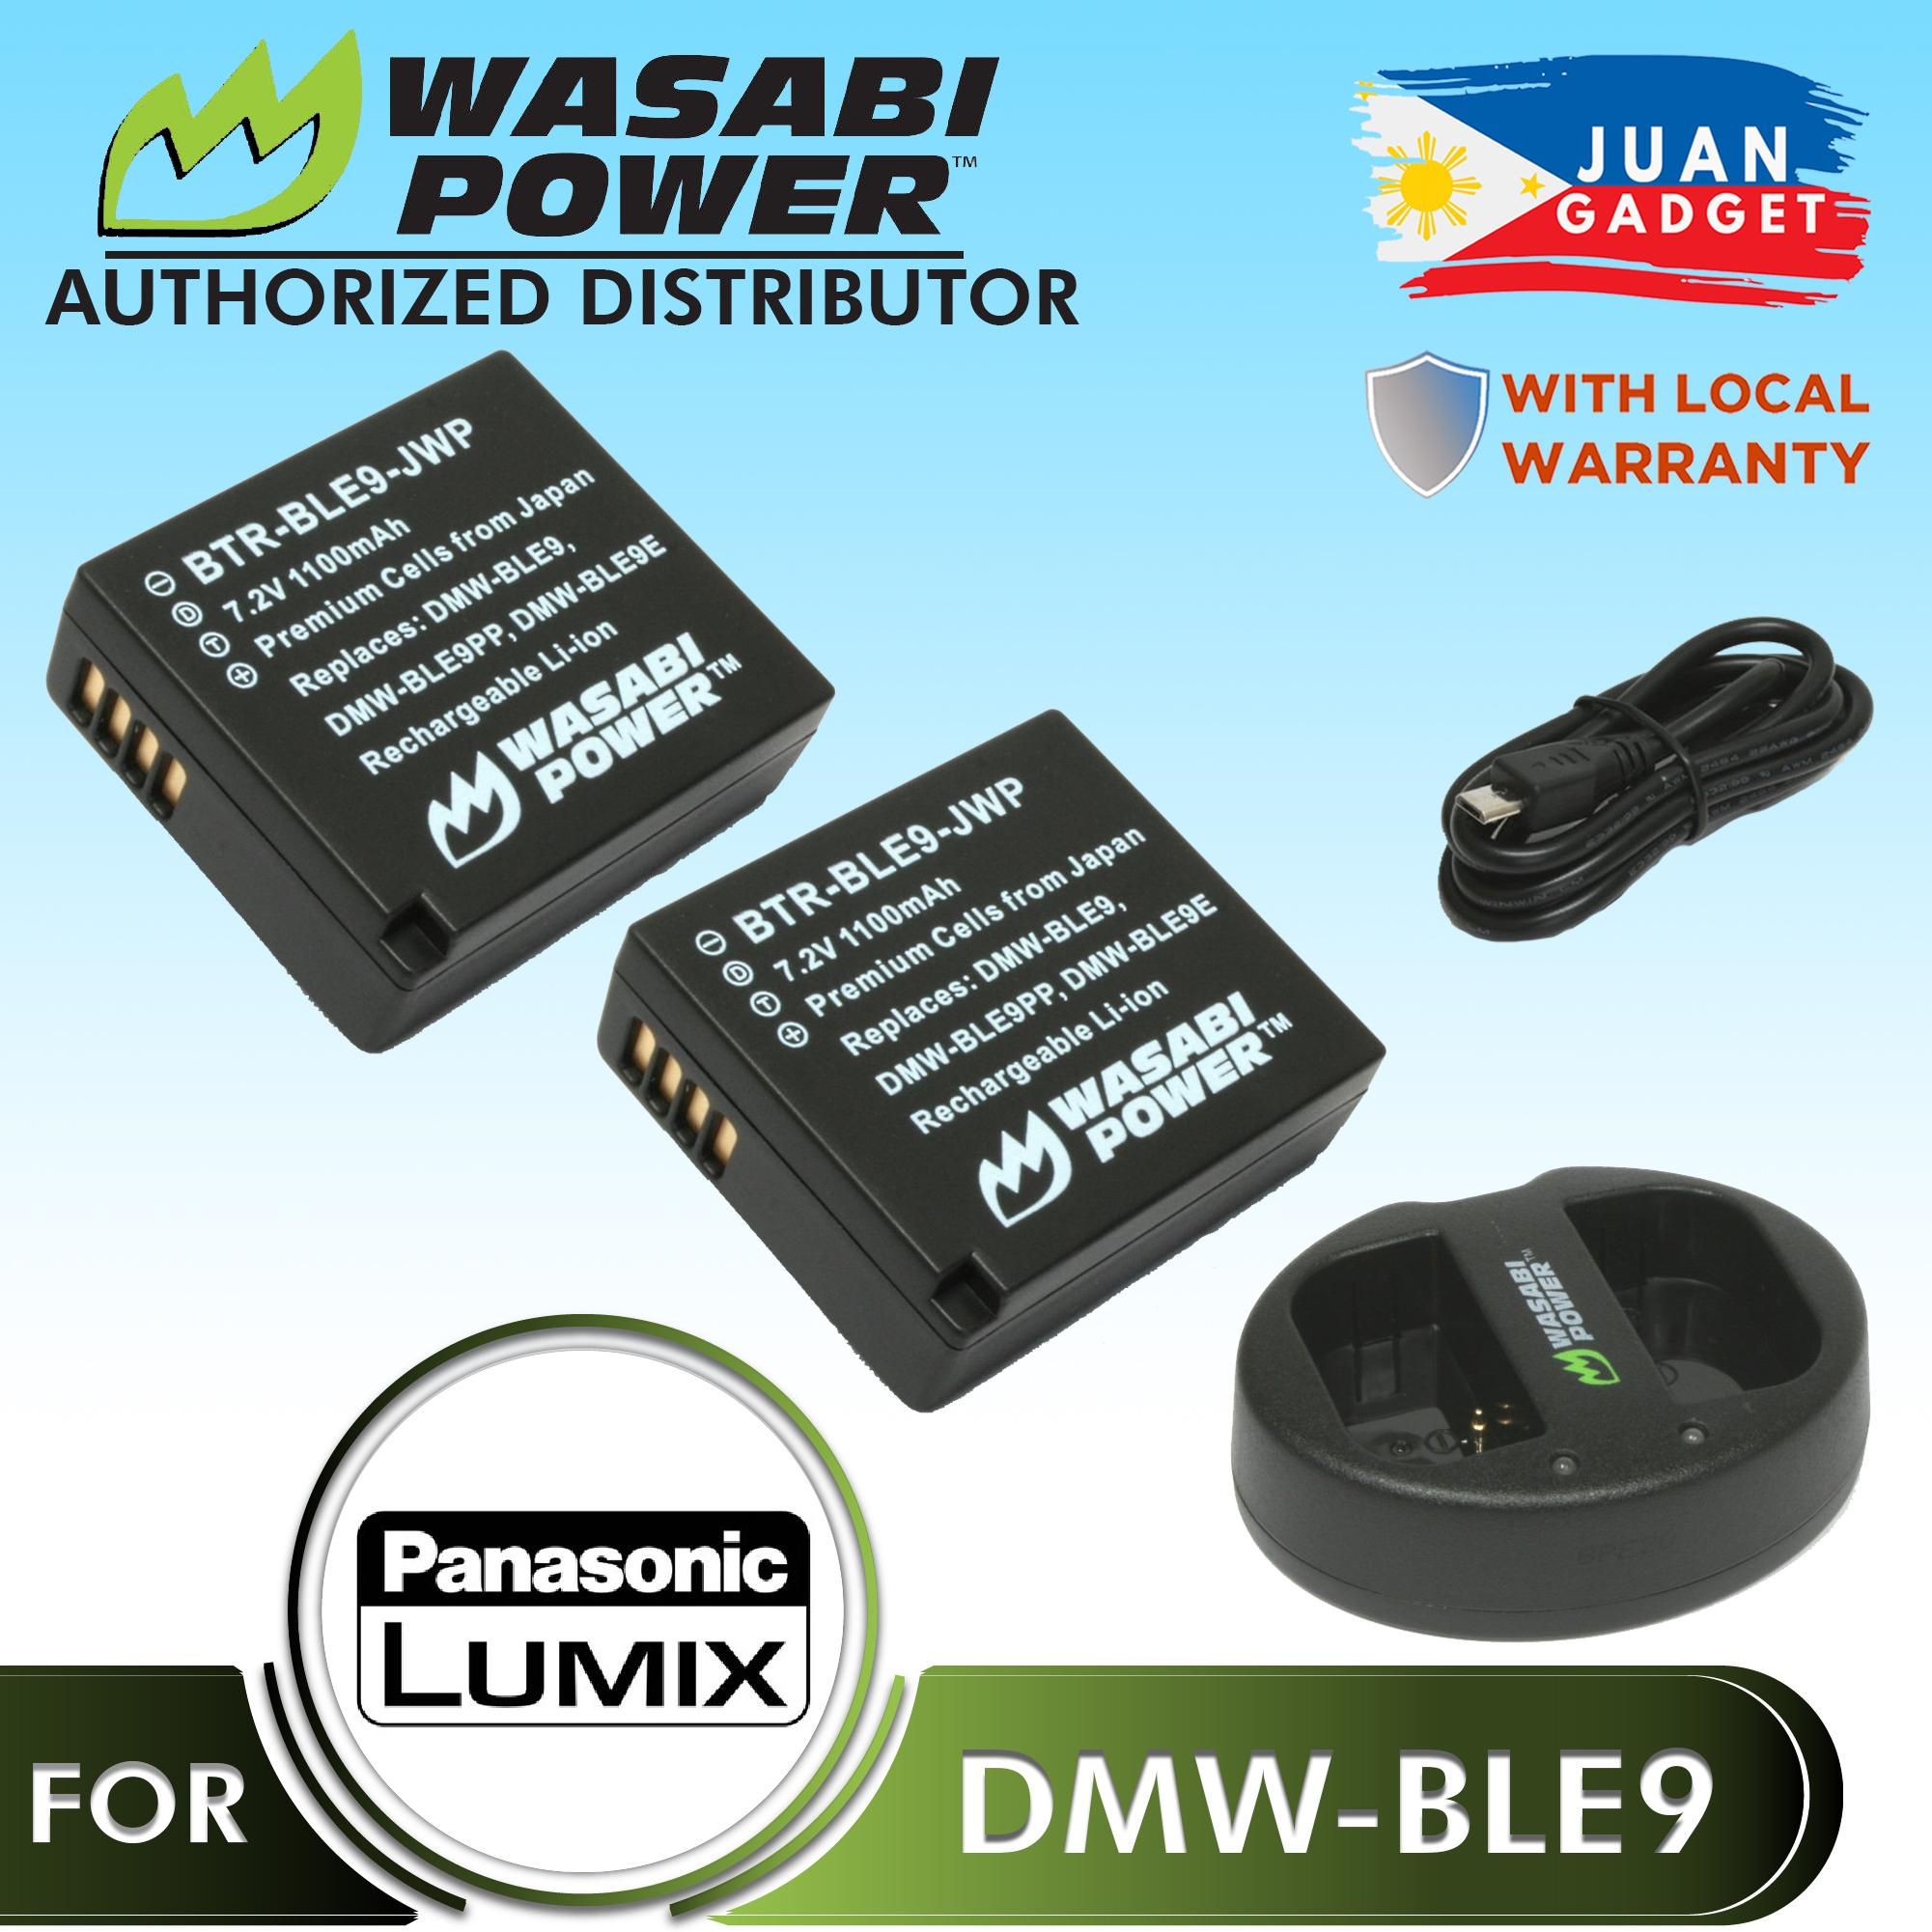 Wasabi Power Battery (2-Pack) and Dual USB Charger for Panasonic DMW-BLE9, BLE9 DMW-BLG10 BLG10 and Panasonic Lumix DMC-GF3, DMC-GF5, DMC-GF6, DMC-GX7, DMC-GX85, DMC-LX100, DMC-ZS60, DMC-ZS100